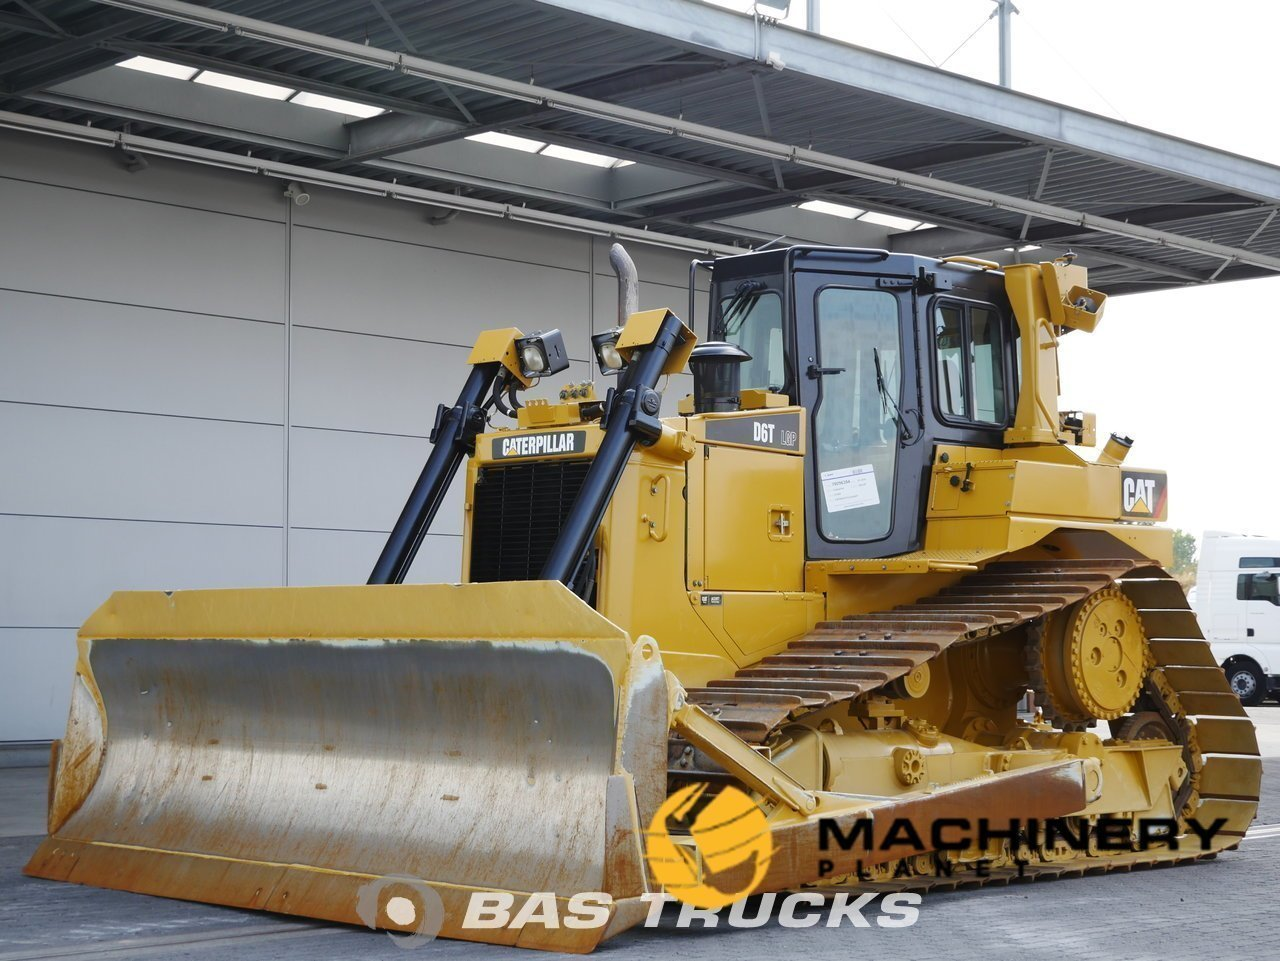 Used-Construction-equipment-Caterpillar-D6T-LGP-Track-2010_139638_1-1554127900015_5ca21c1c03a3e-1.jpg